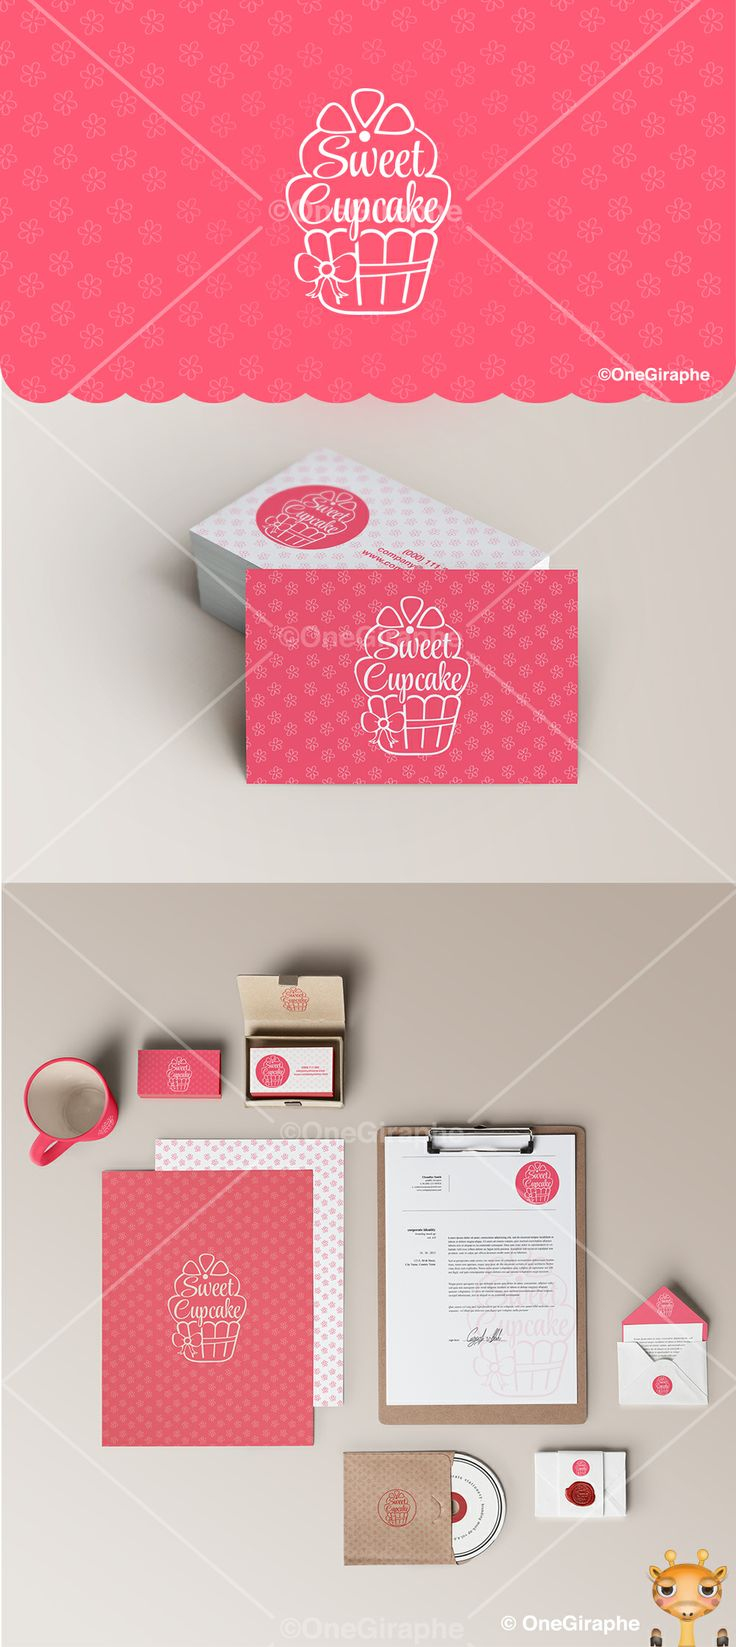 Sweet Cupcakes logo for sale! Contact me at: onegiraphe@gmail.com #cake #cupcake #bake #bakery #pink #store #woman #lady #logo #logodesign #design #graphic #graphicdesign #brand #identity #brandidentity